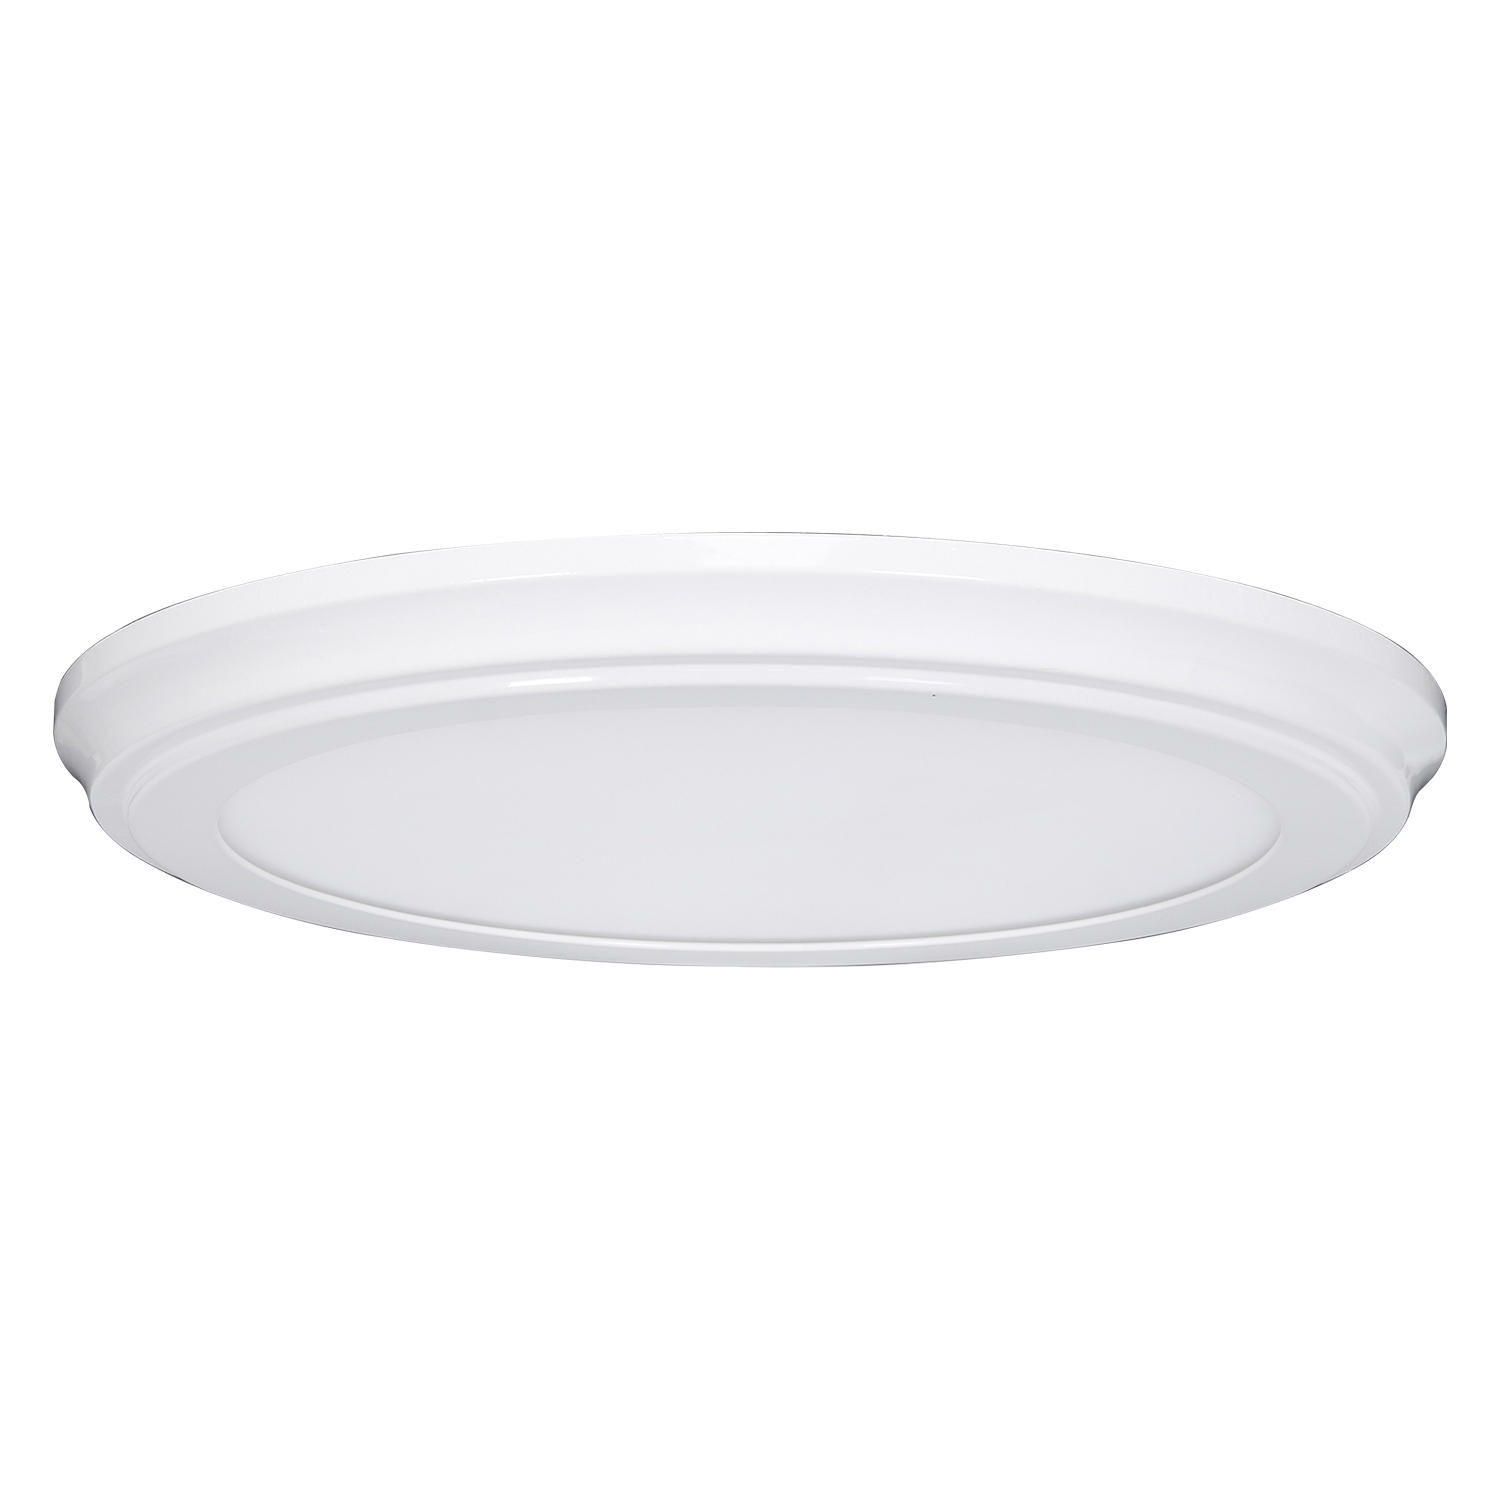 Honeywell Dimmable 15'' Round Ceiling LED Light With Remote Control